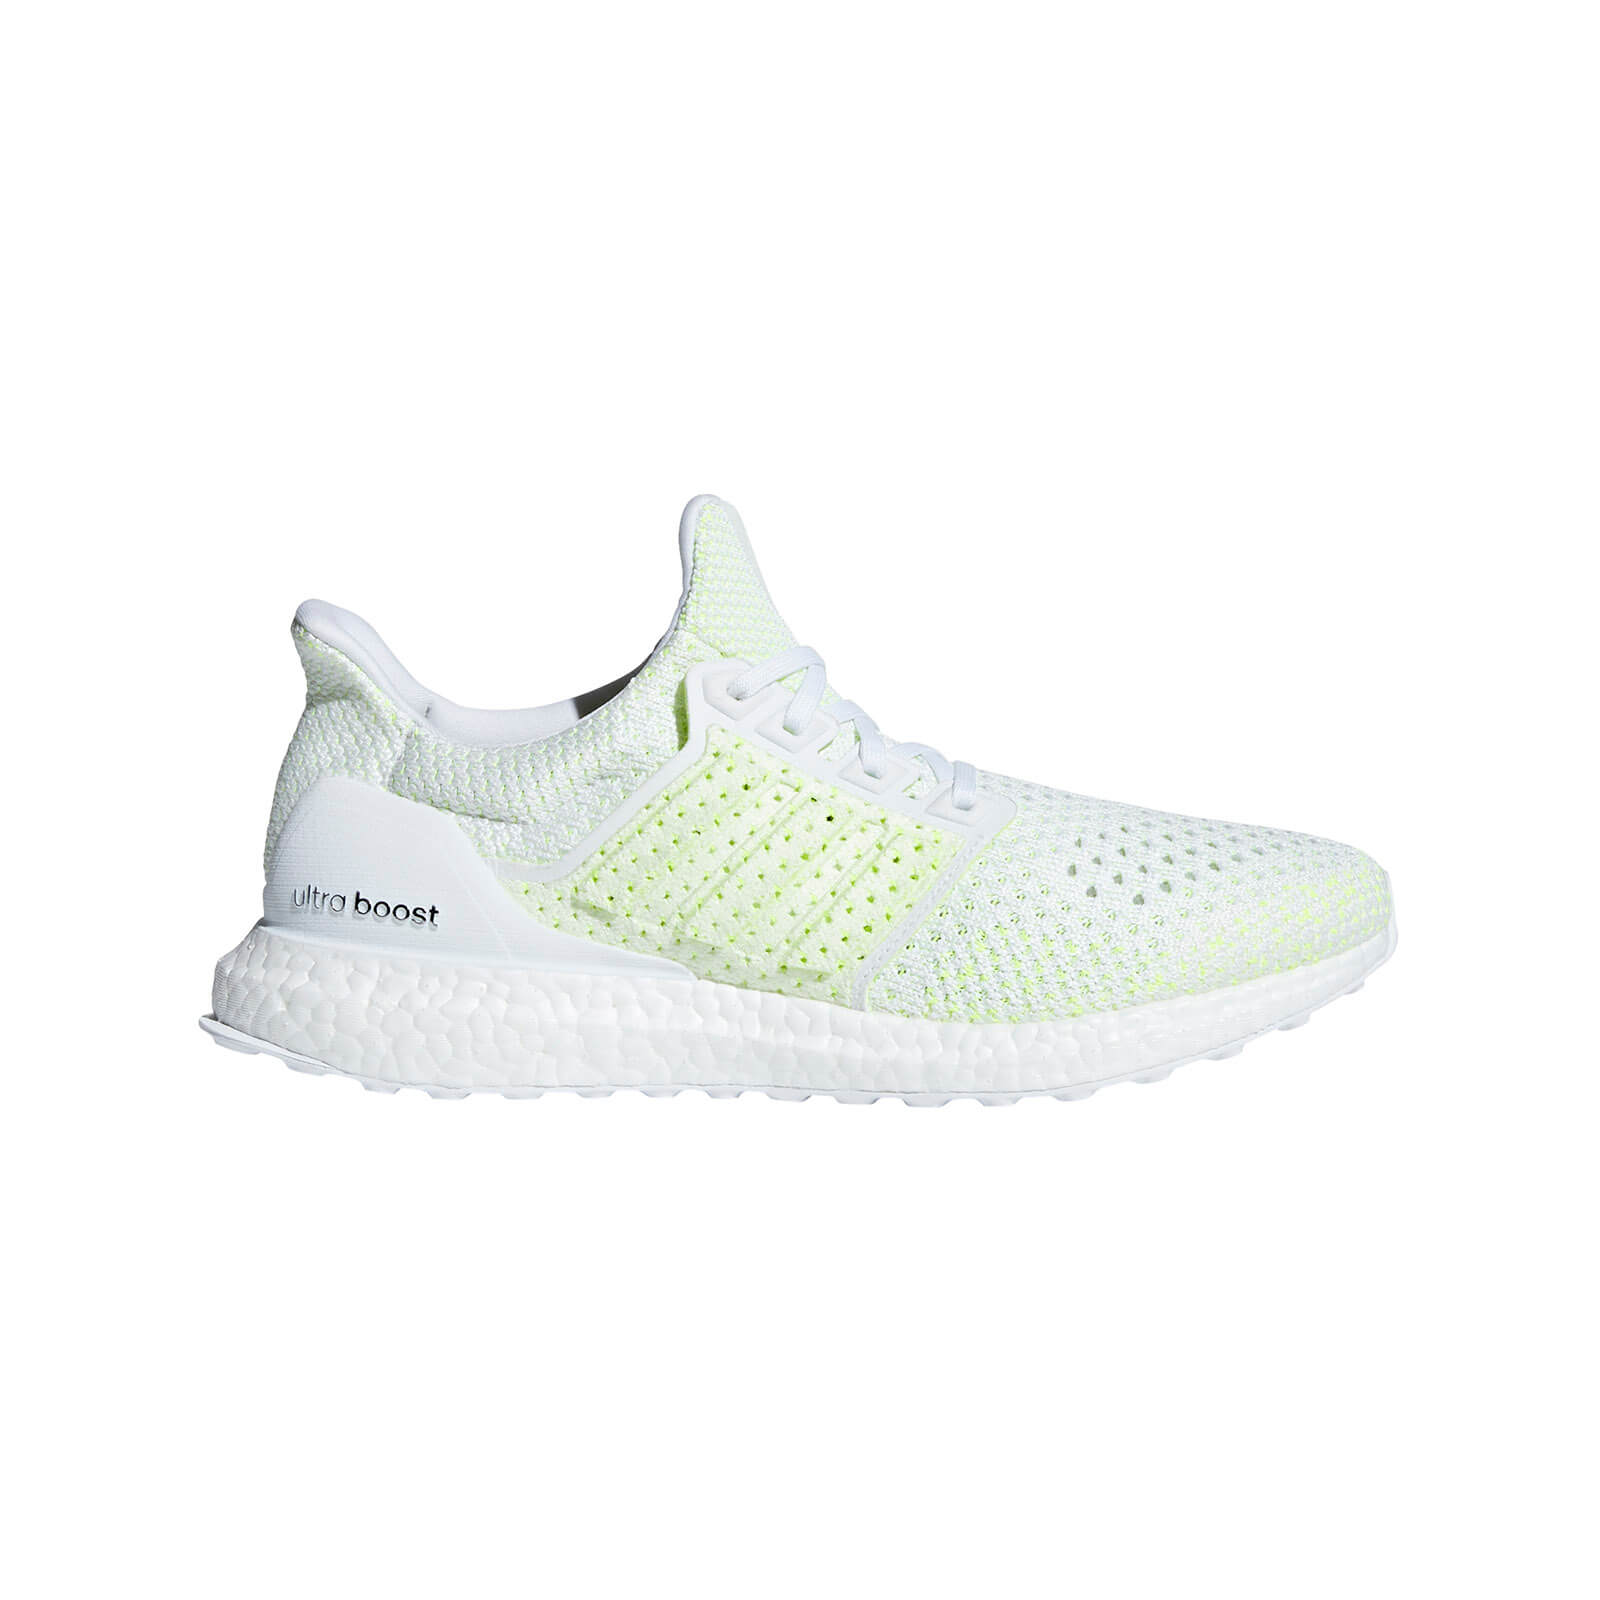 fd00754a1fa adidas Men s Ultraboost Clima Running Shoes - White Green ...